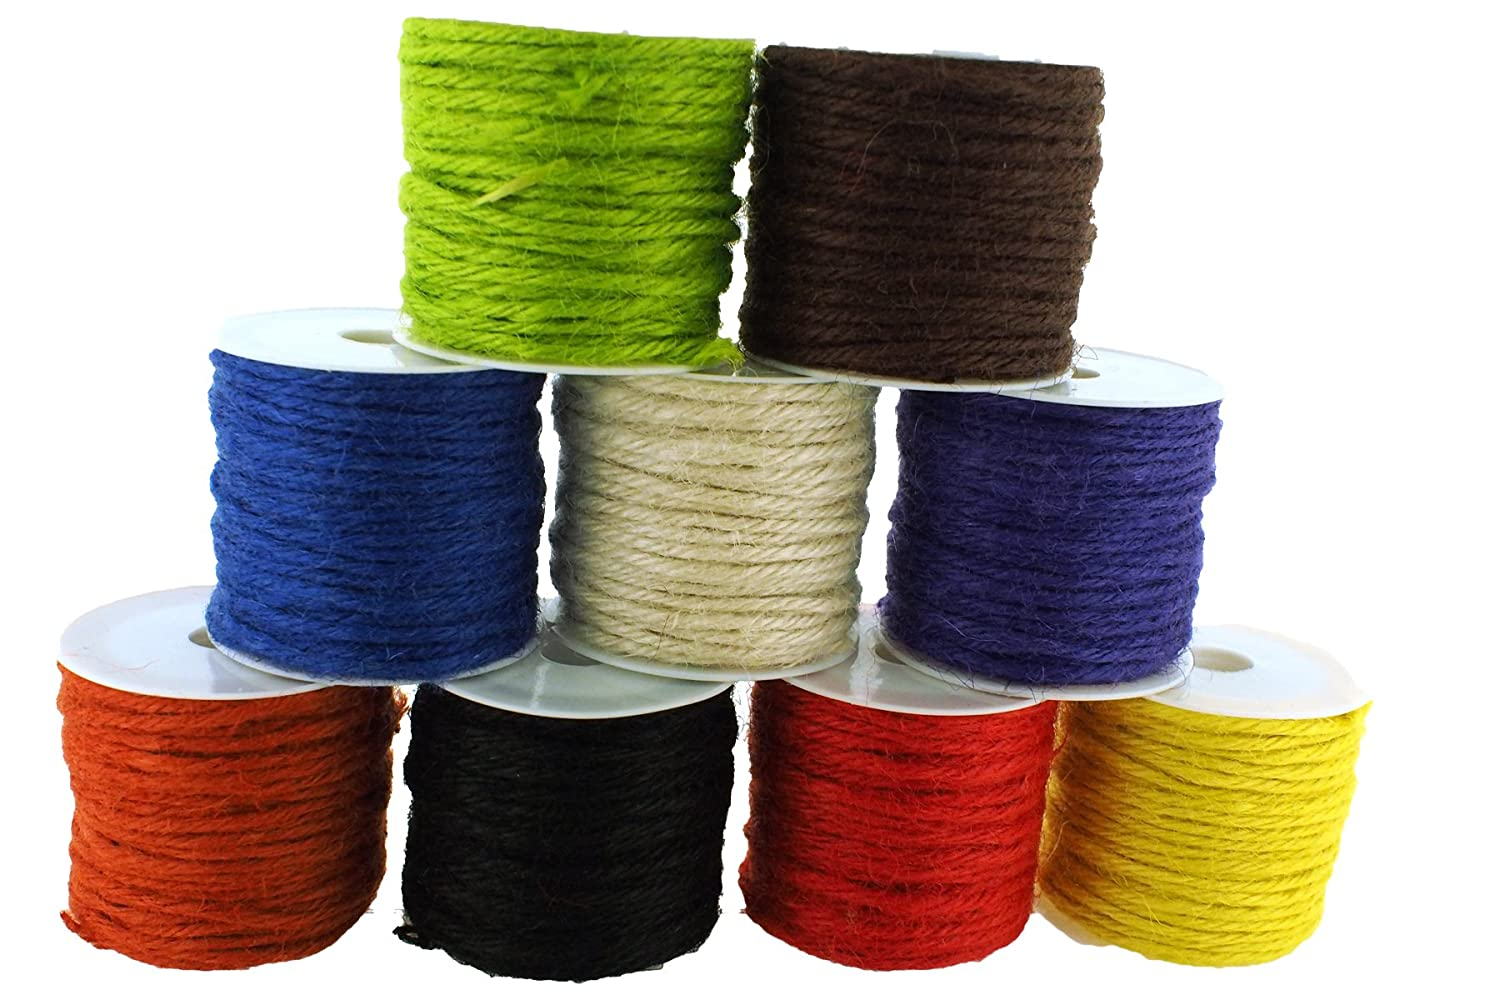 Trimweaver 2mm Jute Twine, 90-Yard, Variety Pack